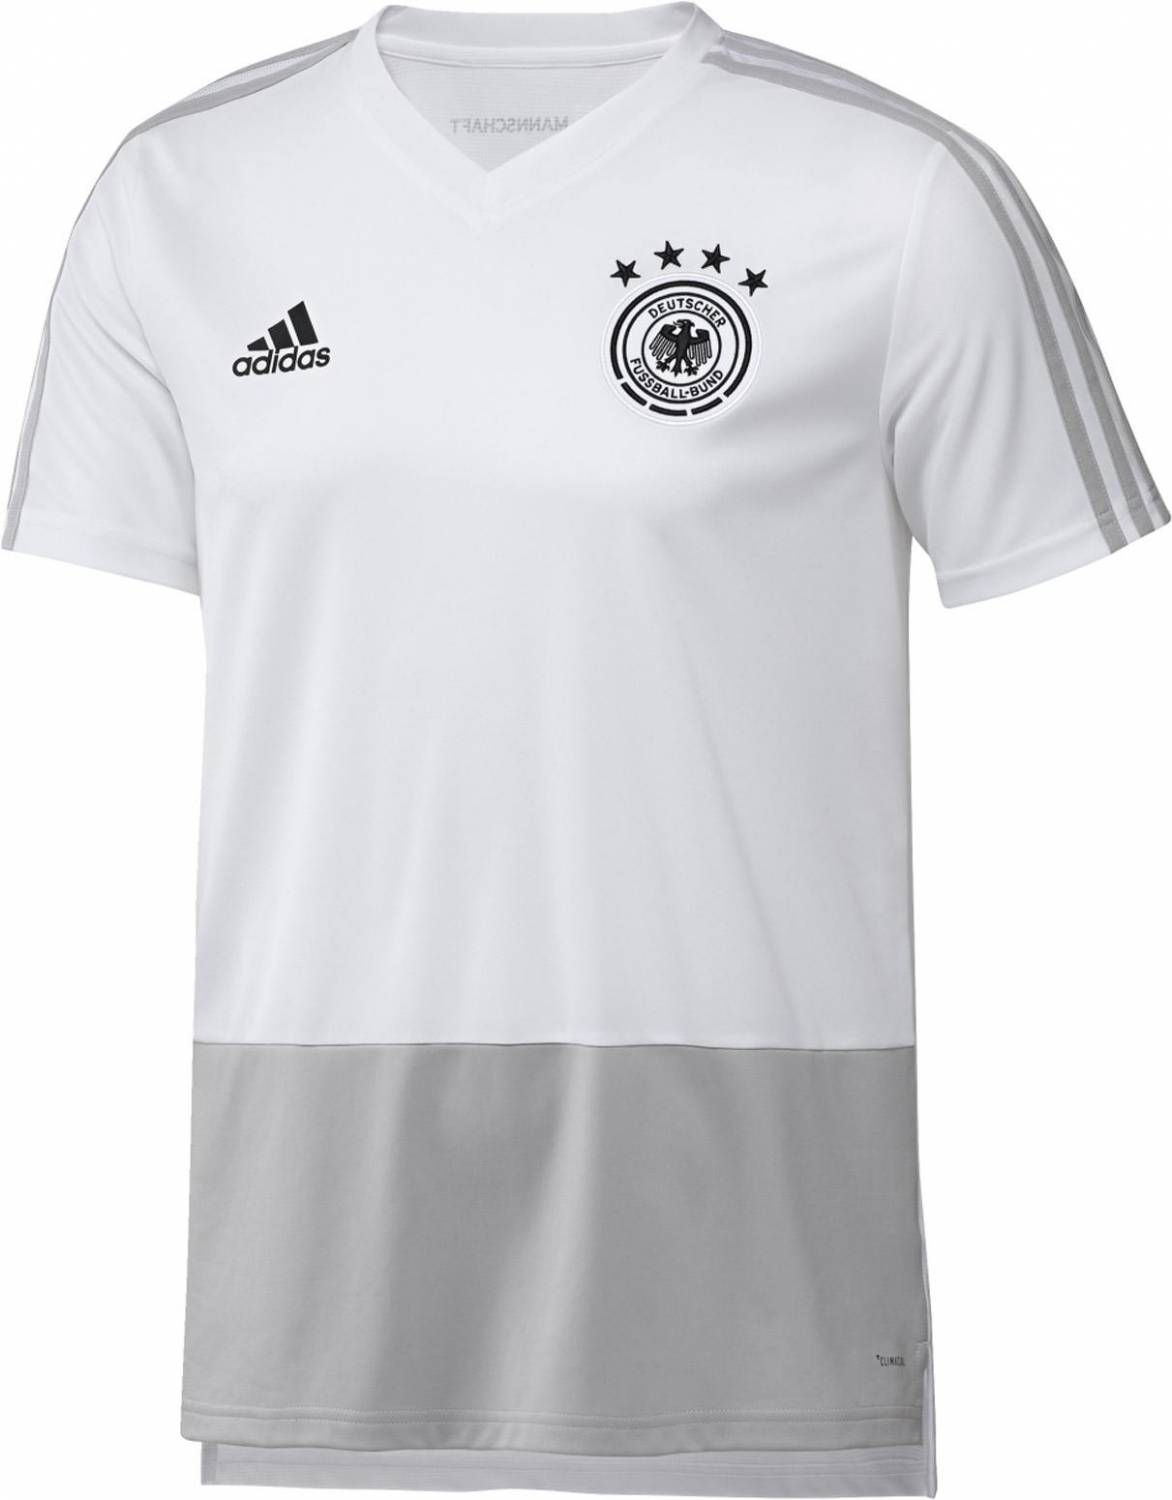 adidas-dfb-fu-szlig-ball-training-jersey-gr-ouml-szlig-e-s-white-grey-two-f17-black-